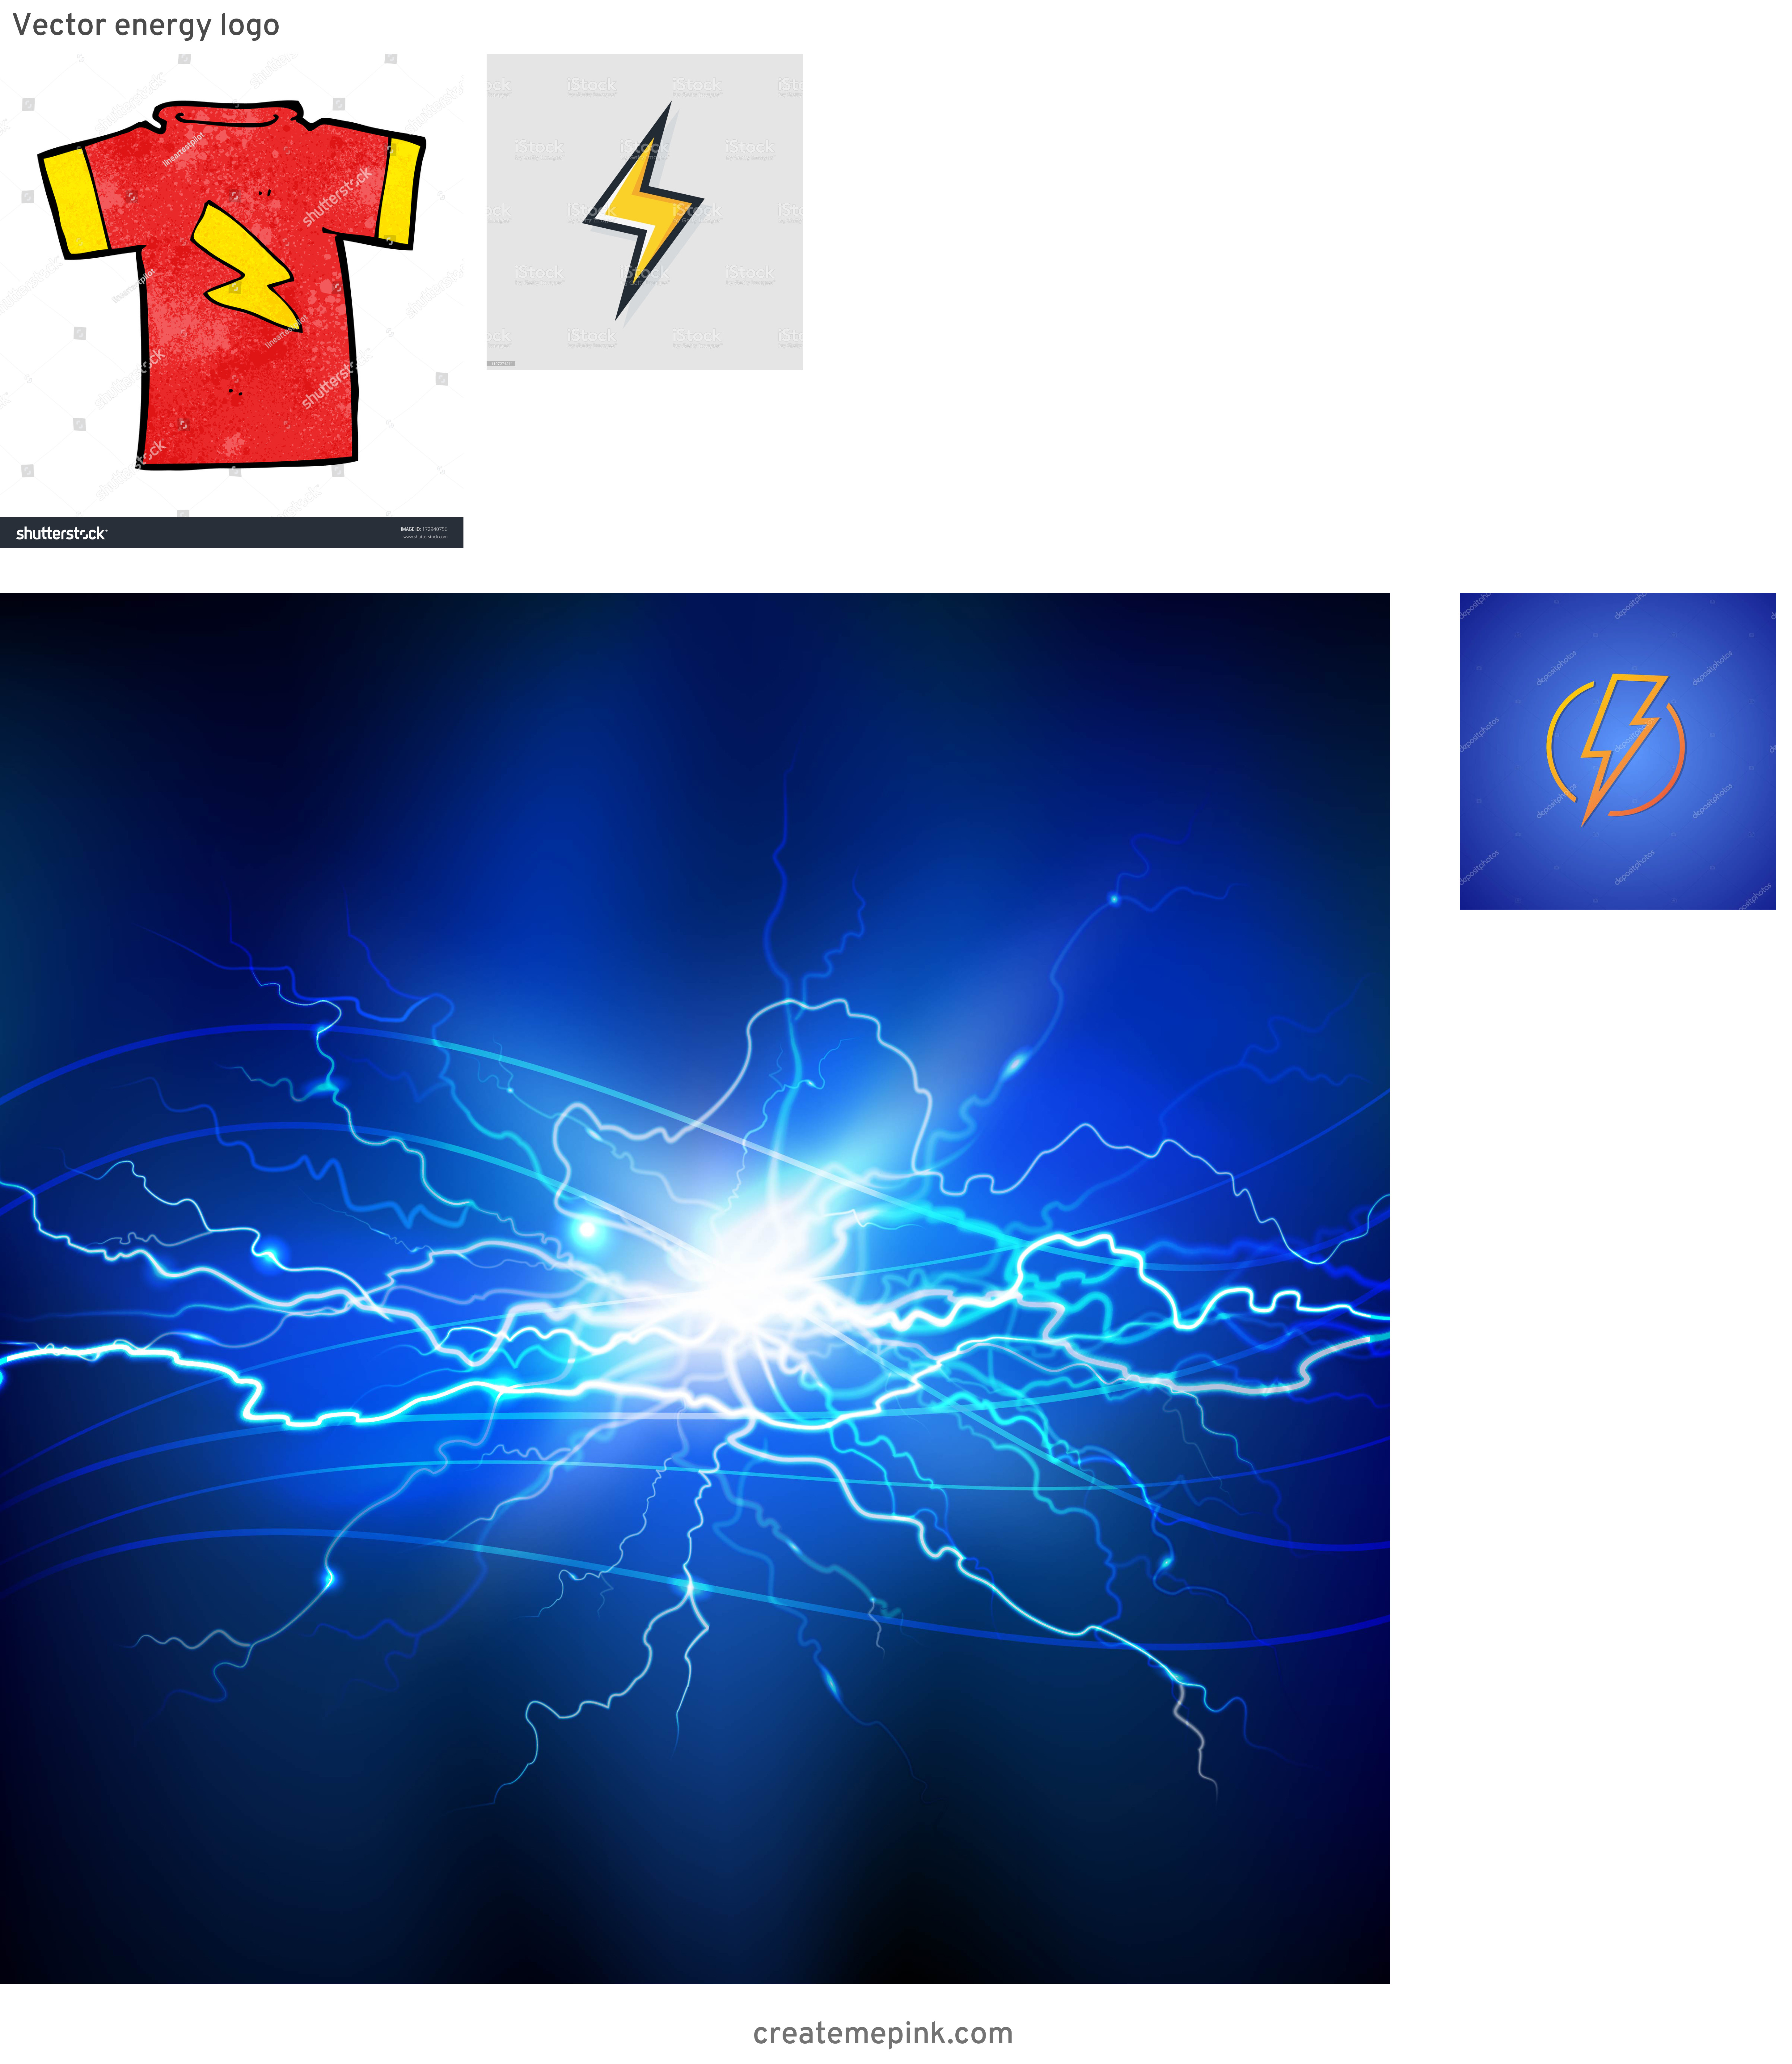 Lightning Vector T: Vector Energy Logo